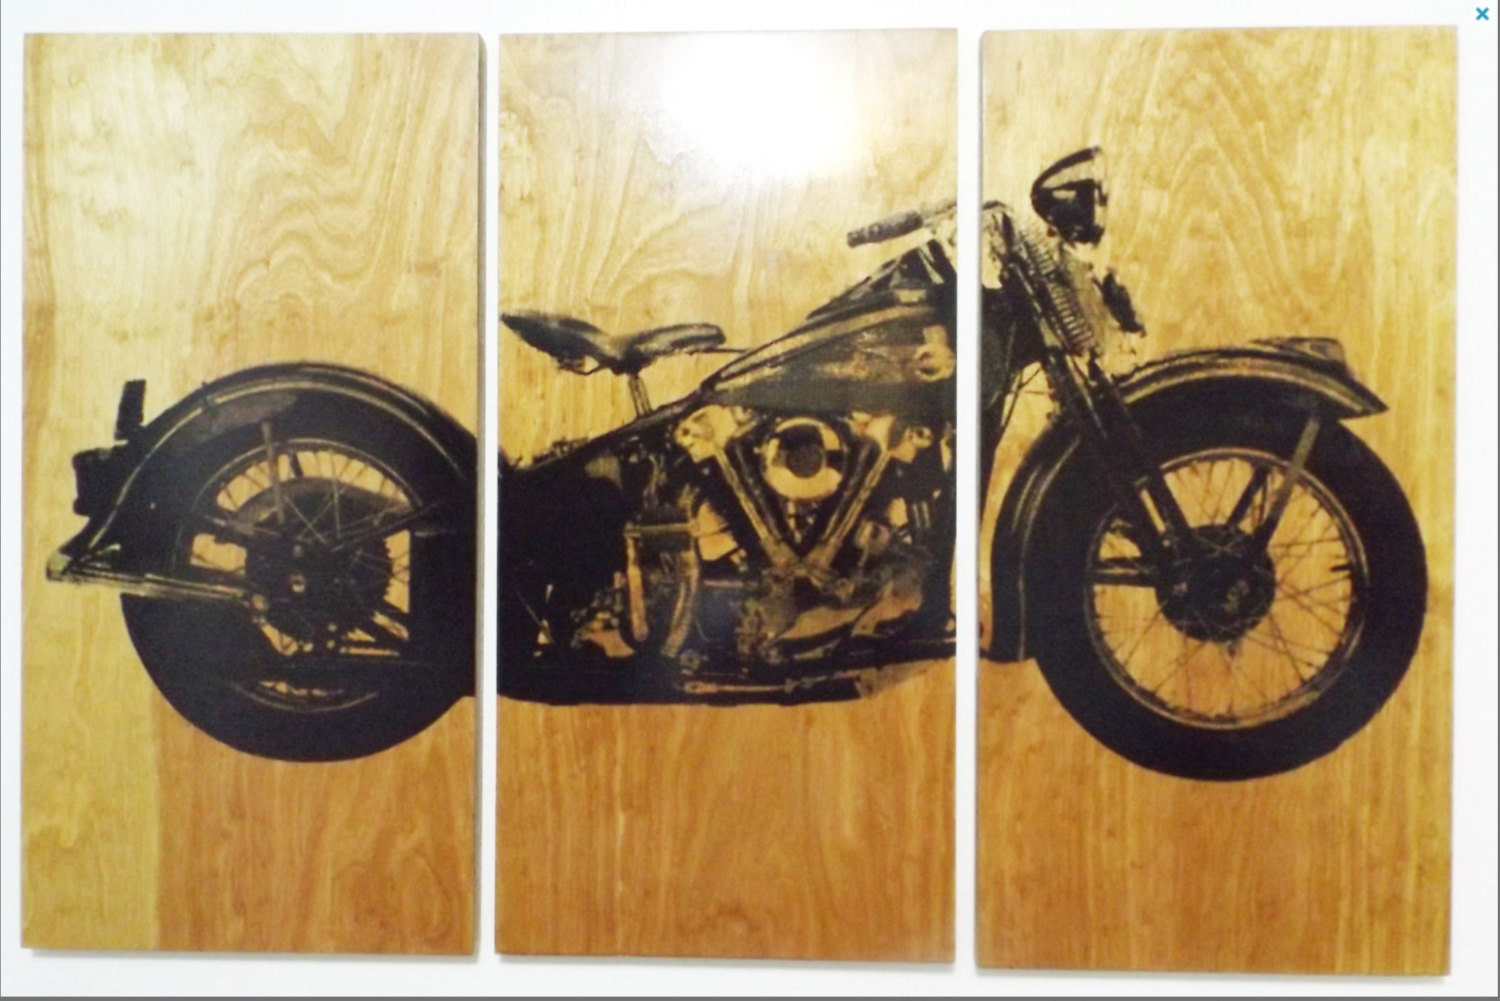 xl knucklehead motorcycle screen print wood painting wall art. Black Bedroom Furniture Sets. Home Design Ideas